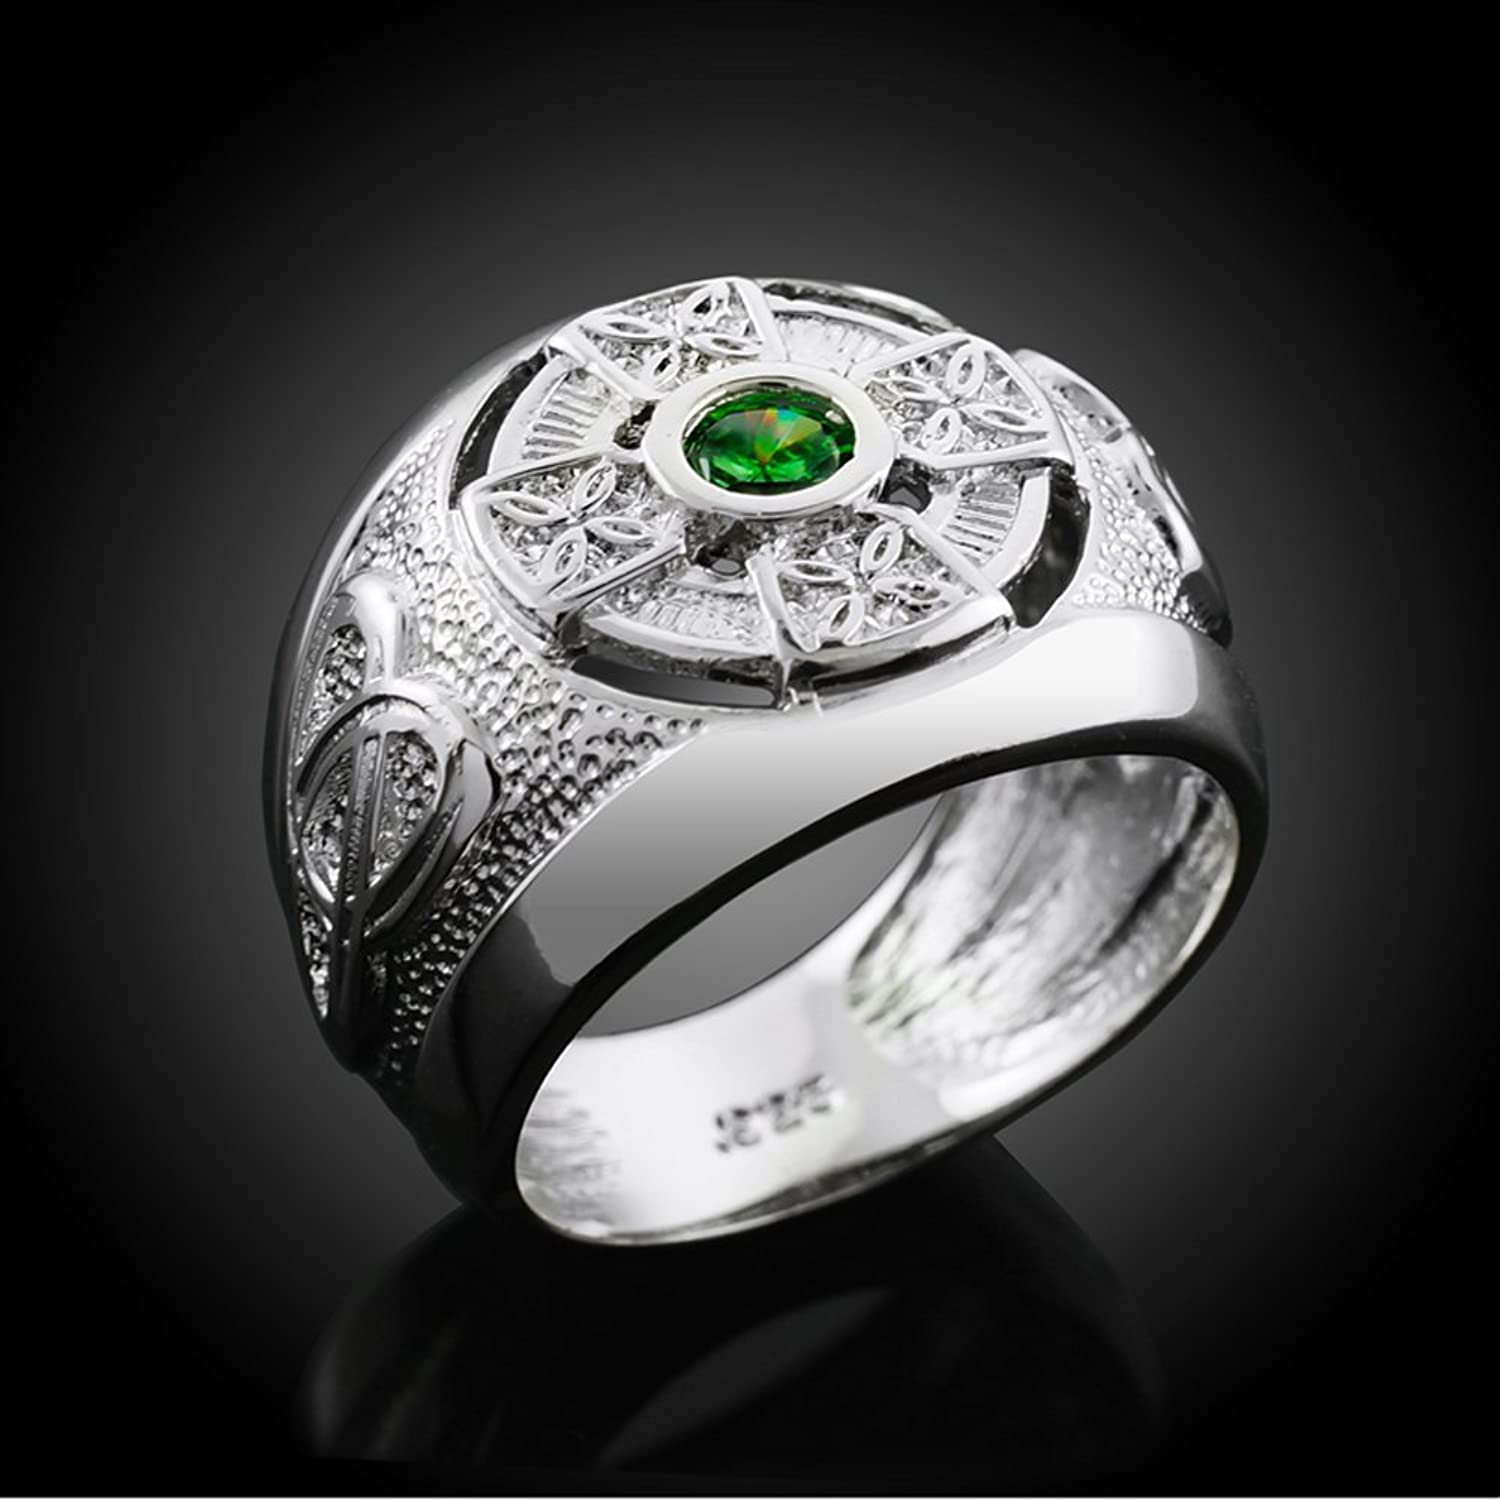 luxury images fresh ashworthmairsgroup rings unique knot bands celtic mens of wedding